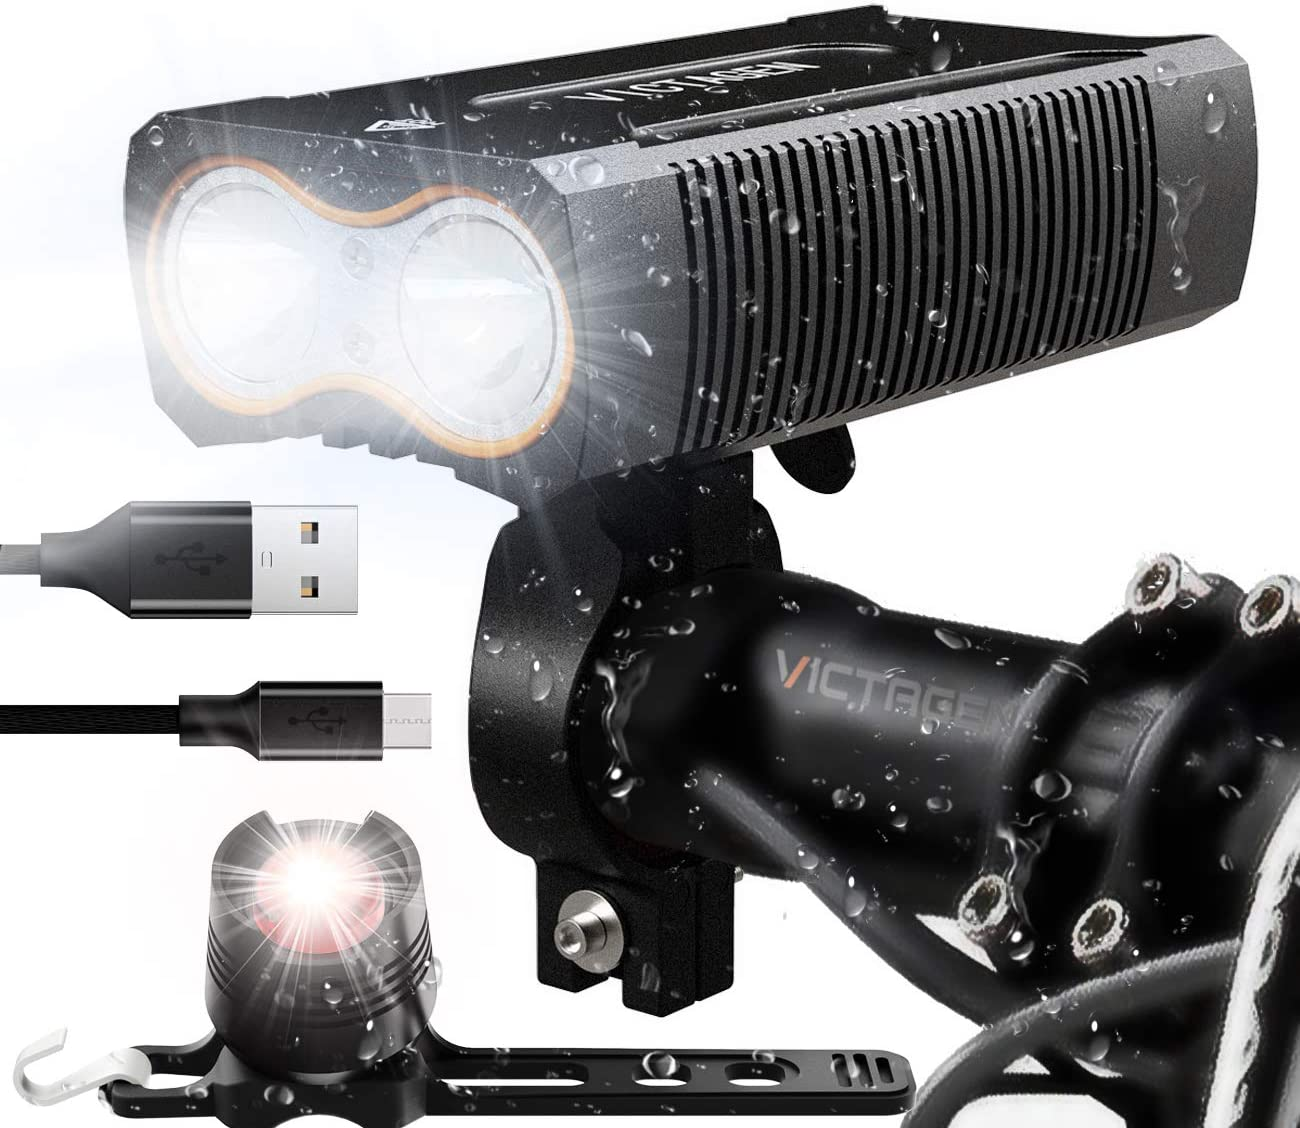 Victagen USB Rechargeable Bike Light}